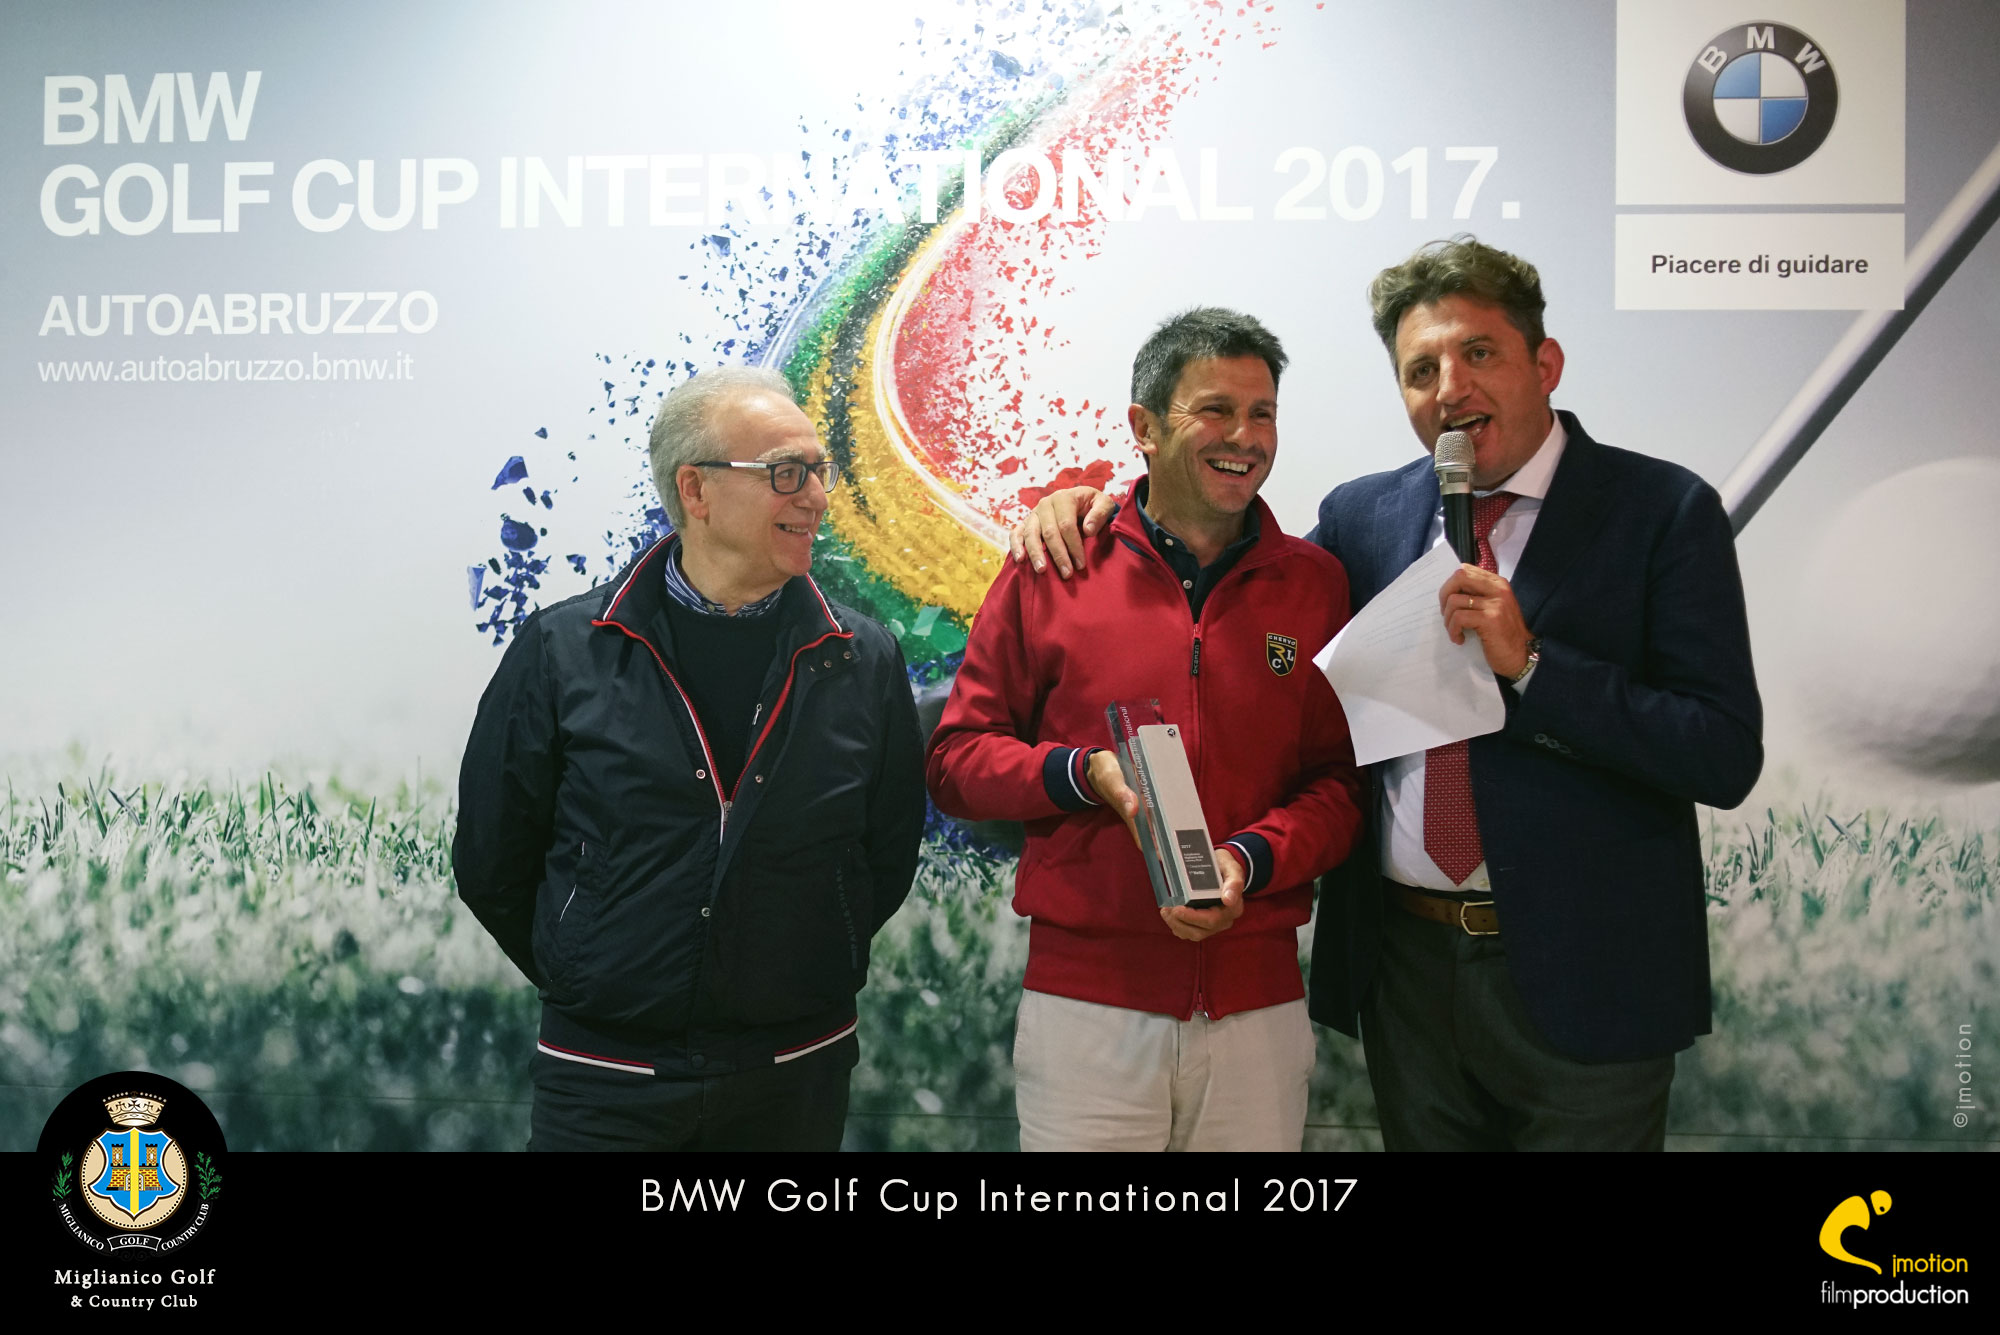 Miglianico Golf BMW GOLF CUP INTERNATIONAL 2017 vince Eugenio D'Eustacchio